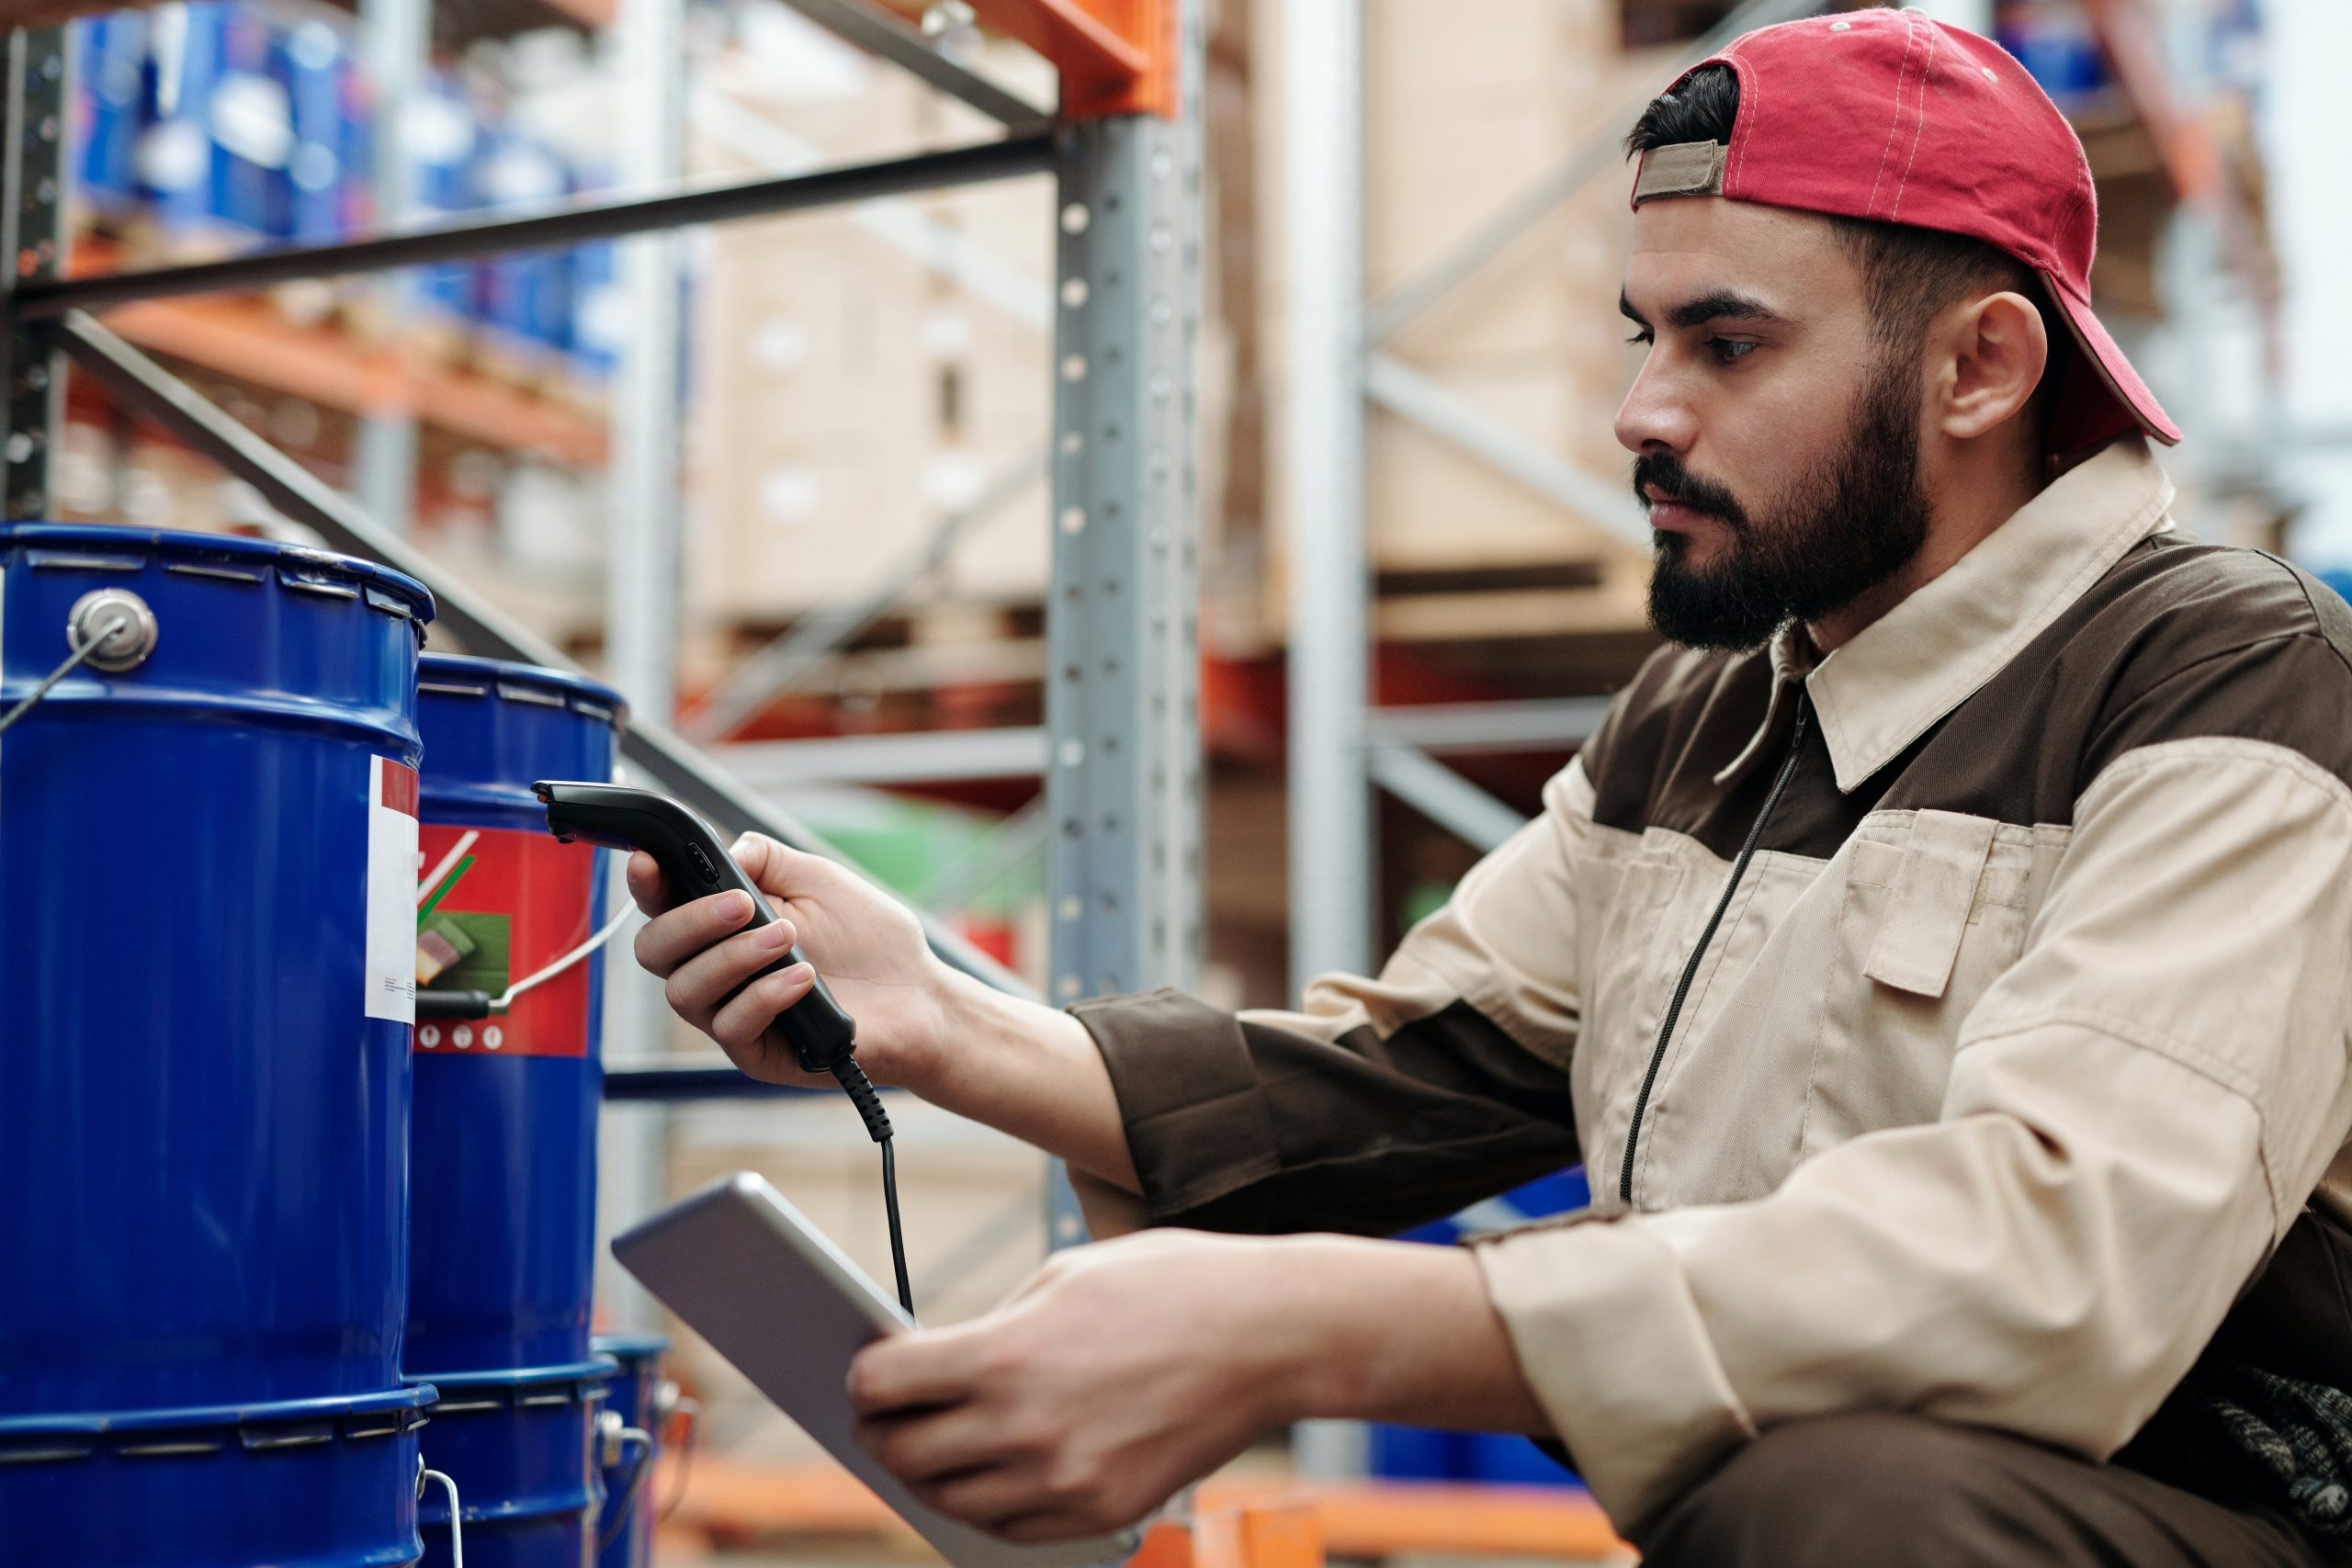 Asset tracking and management in logistics with barcode and RFID solutions